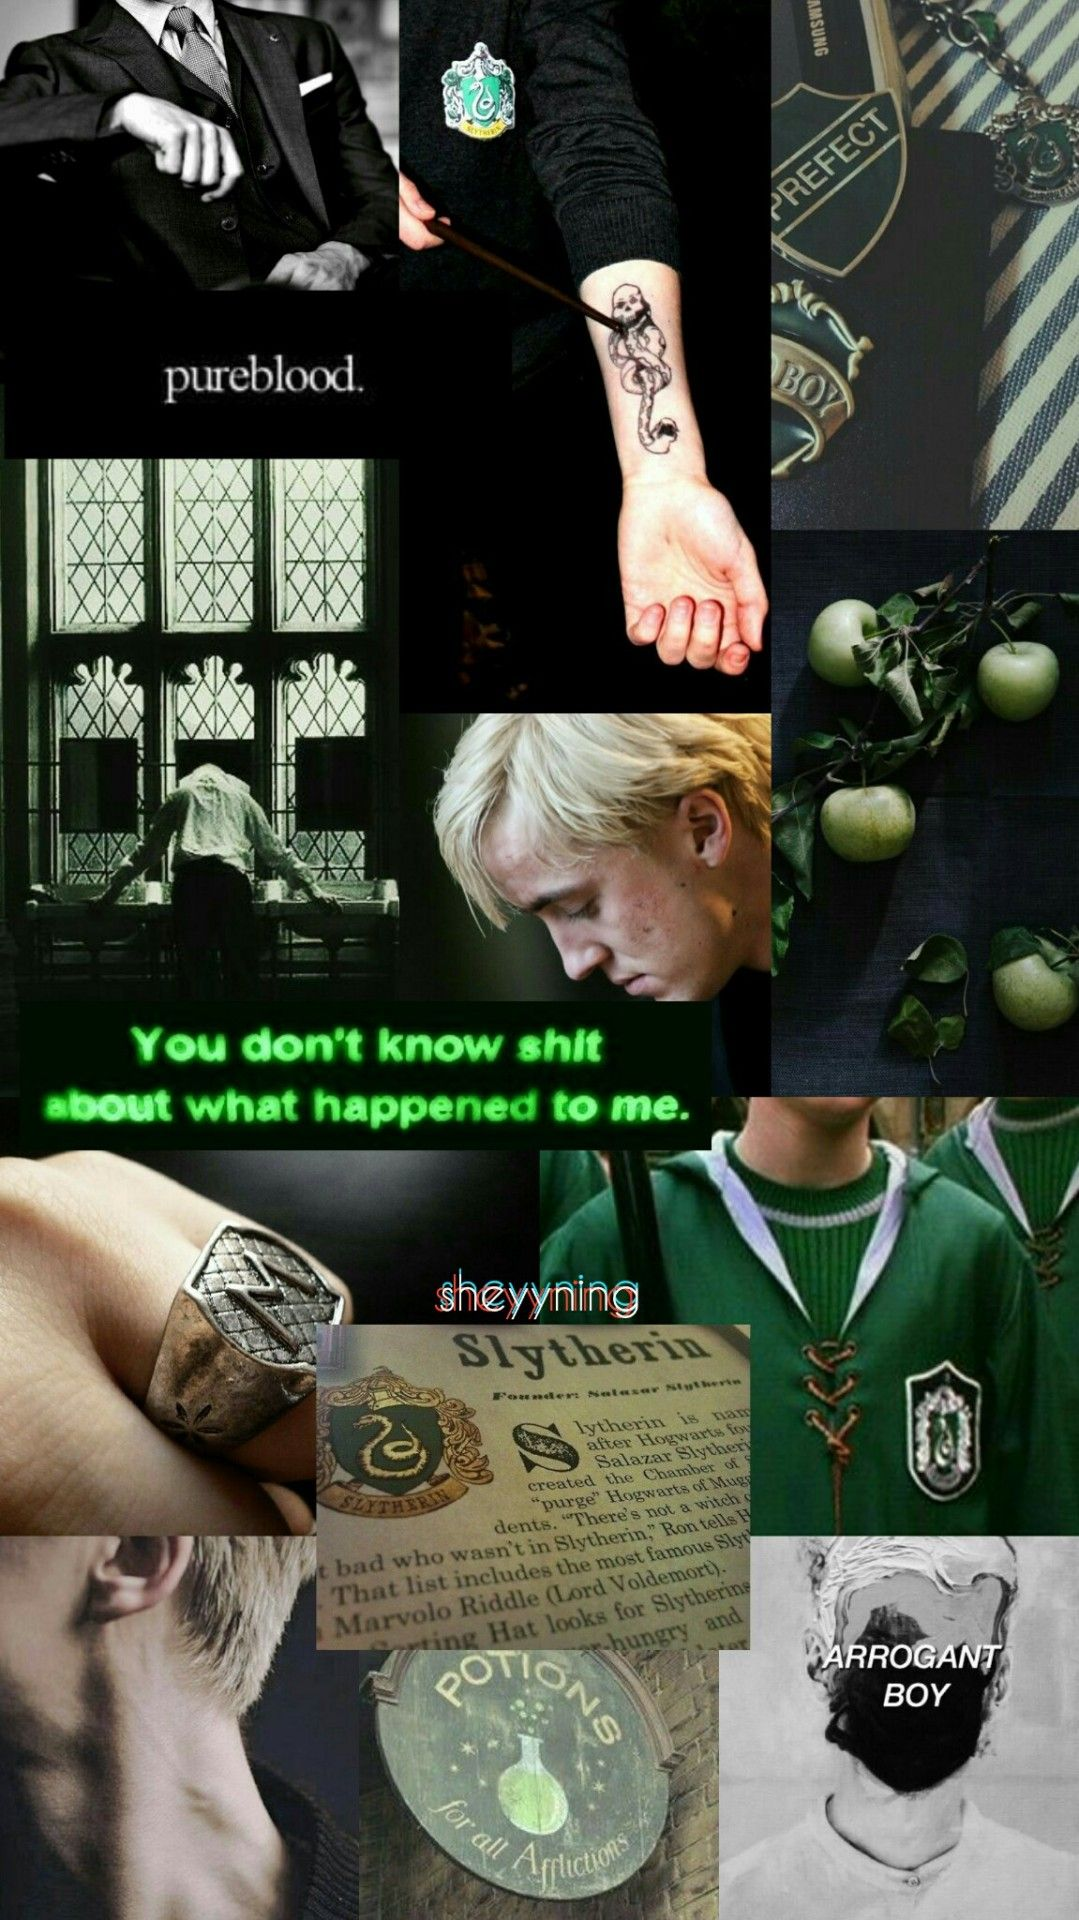 Draco Malfoy Aesthetic Wallpaper for y'all 💚